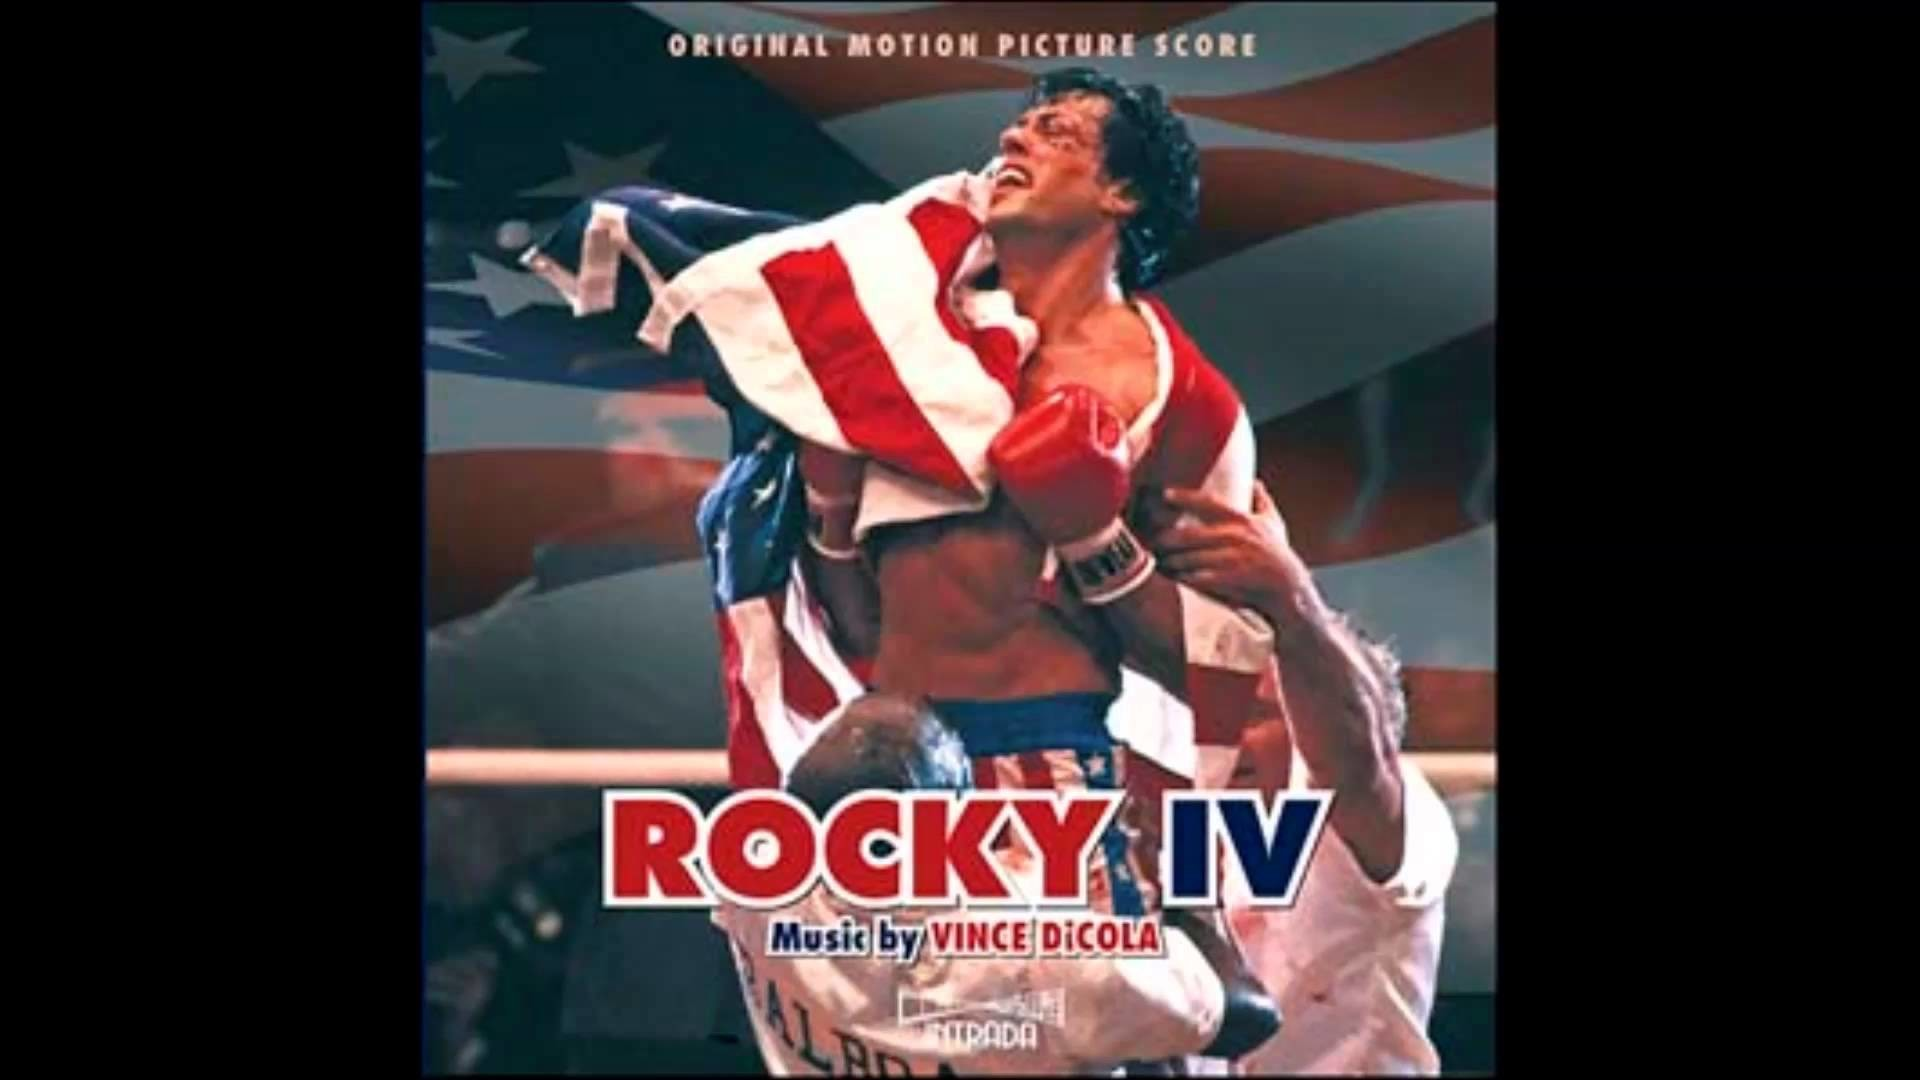 1920x1080 Moviery.com - Download the Movie Rocky IV Online in HD, DVD, DivX